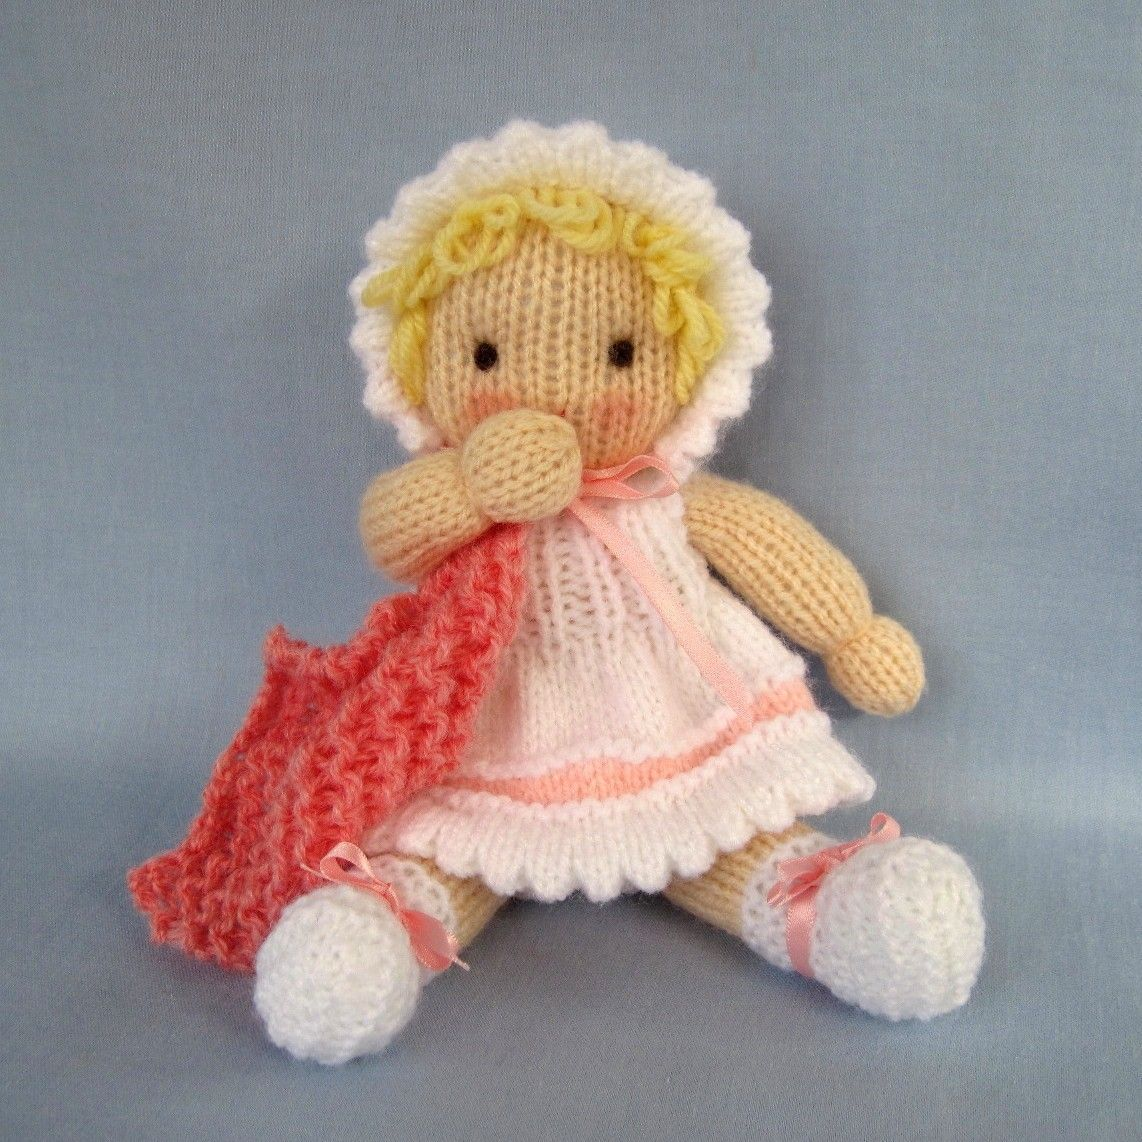 Beautiful dolls beautiful free doll clothes patterns knitted beautiful dolls beautiful free doll clothes patterns knitted serbagunamarine bankloansurffo Image collections